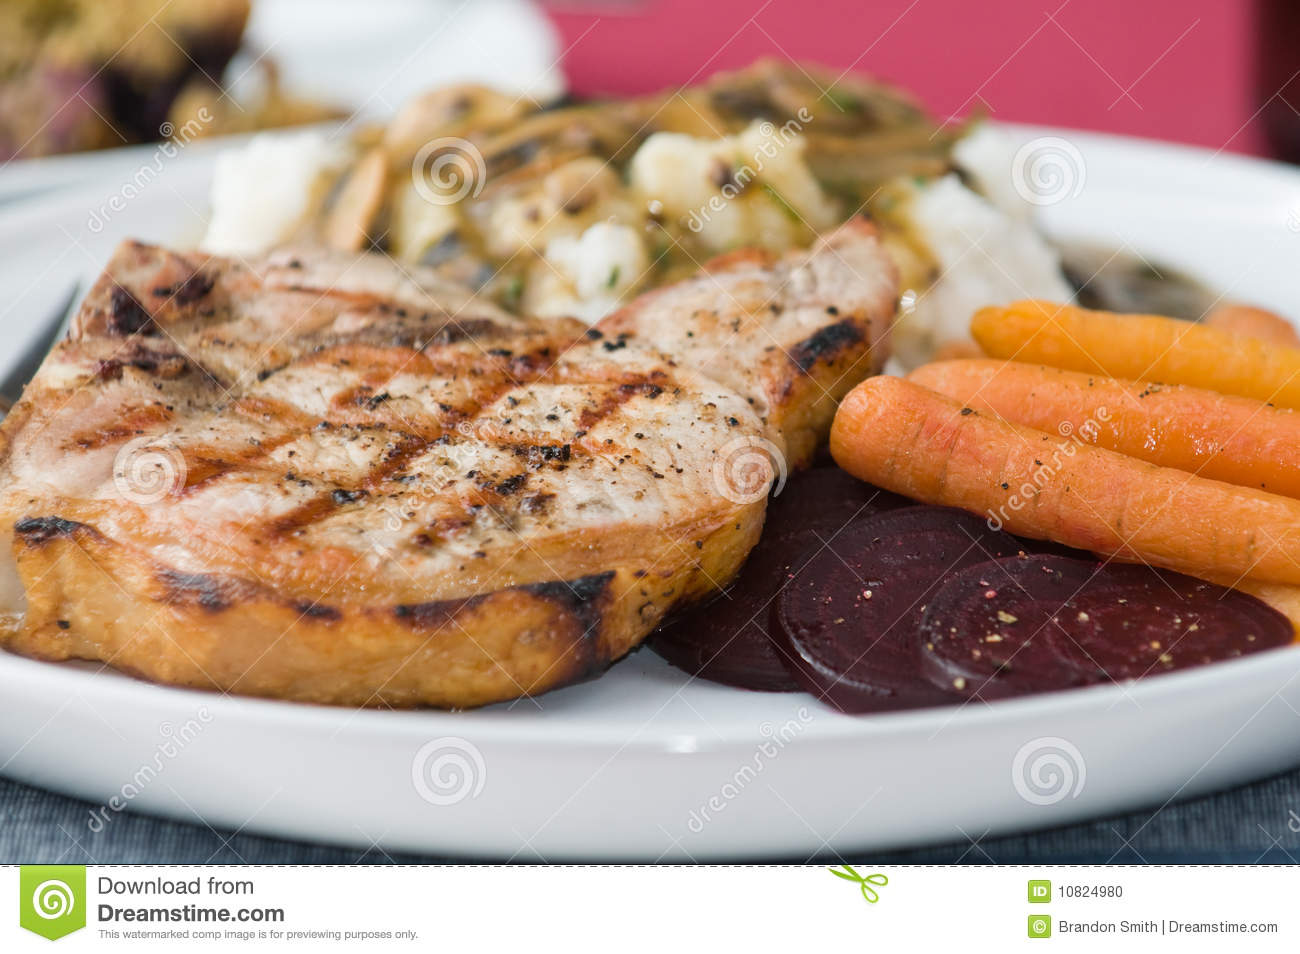 Grilled Pork Chop With Mashed Potatoes, Vegetables, Mushroom Gravy And